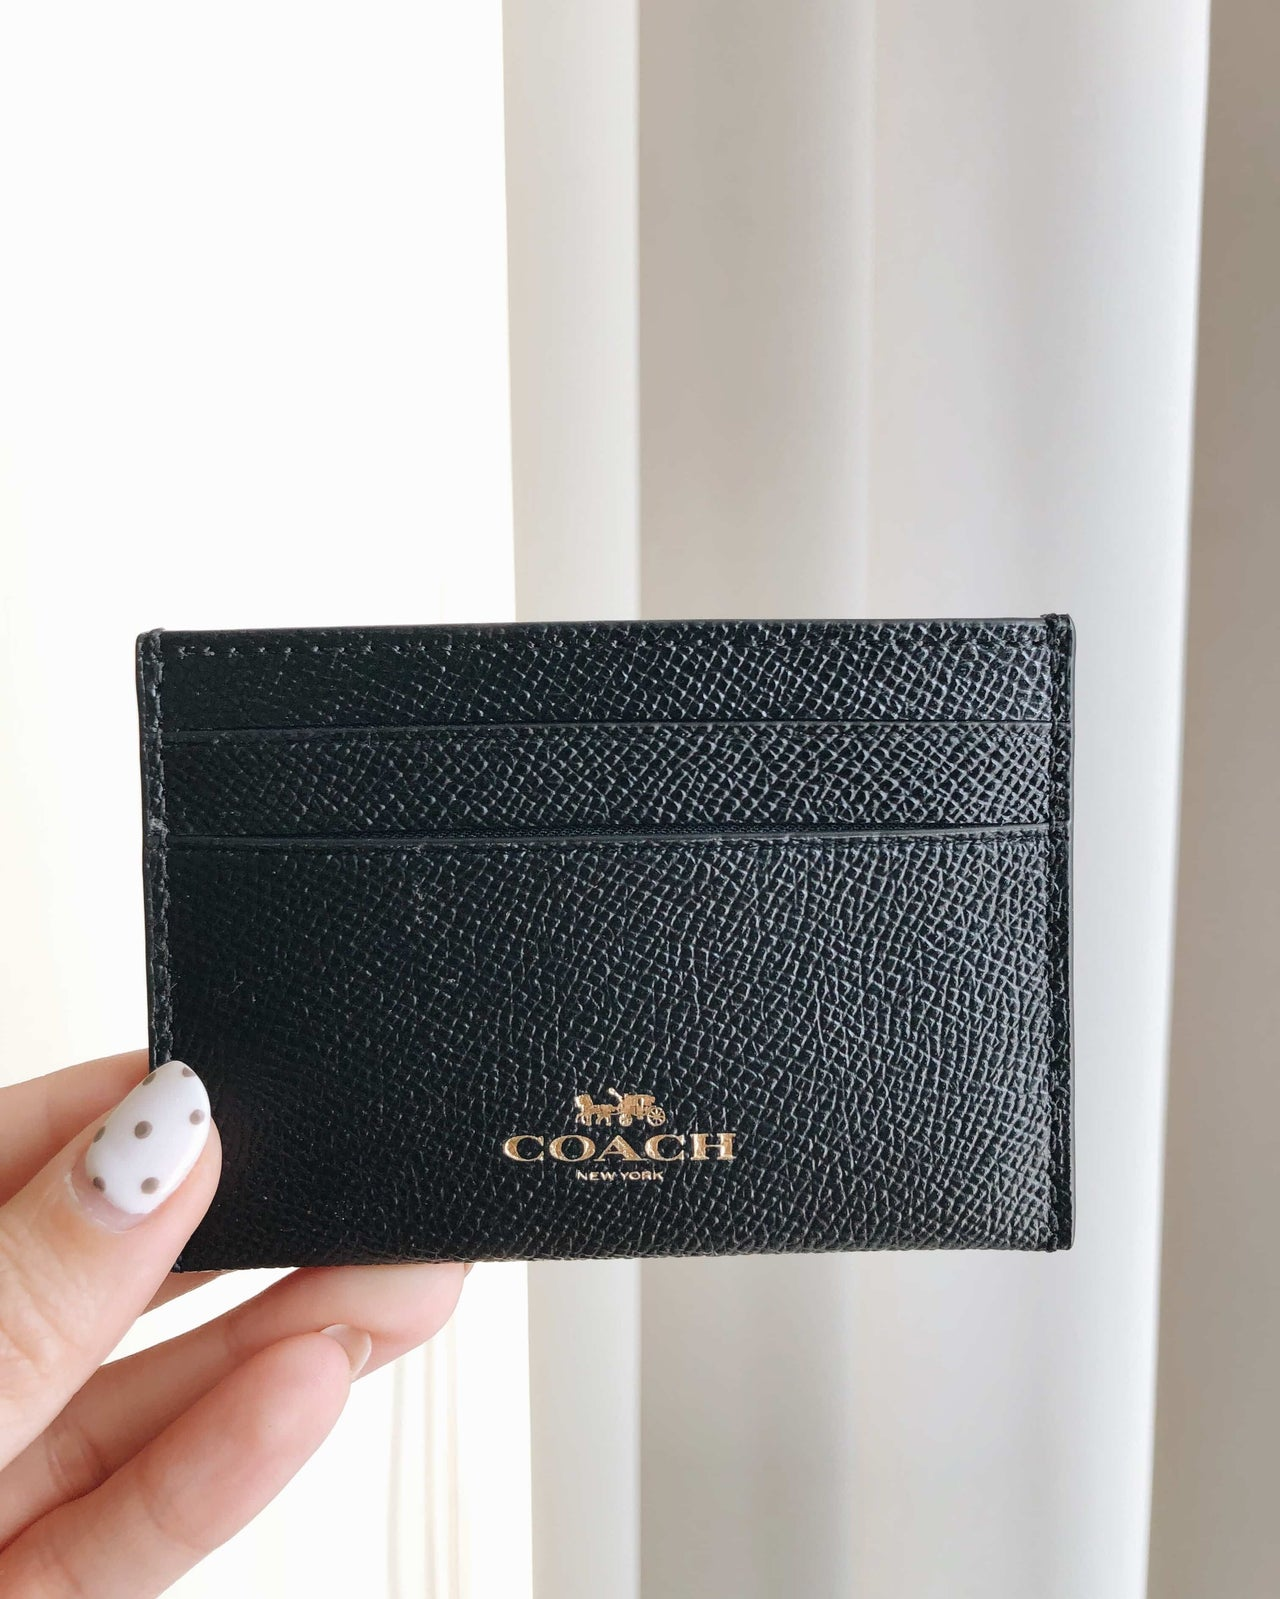 COACH CROSSGRAIN CARD CASE - LovelyMadness Clothing Online Fashion Malaysia